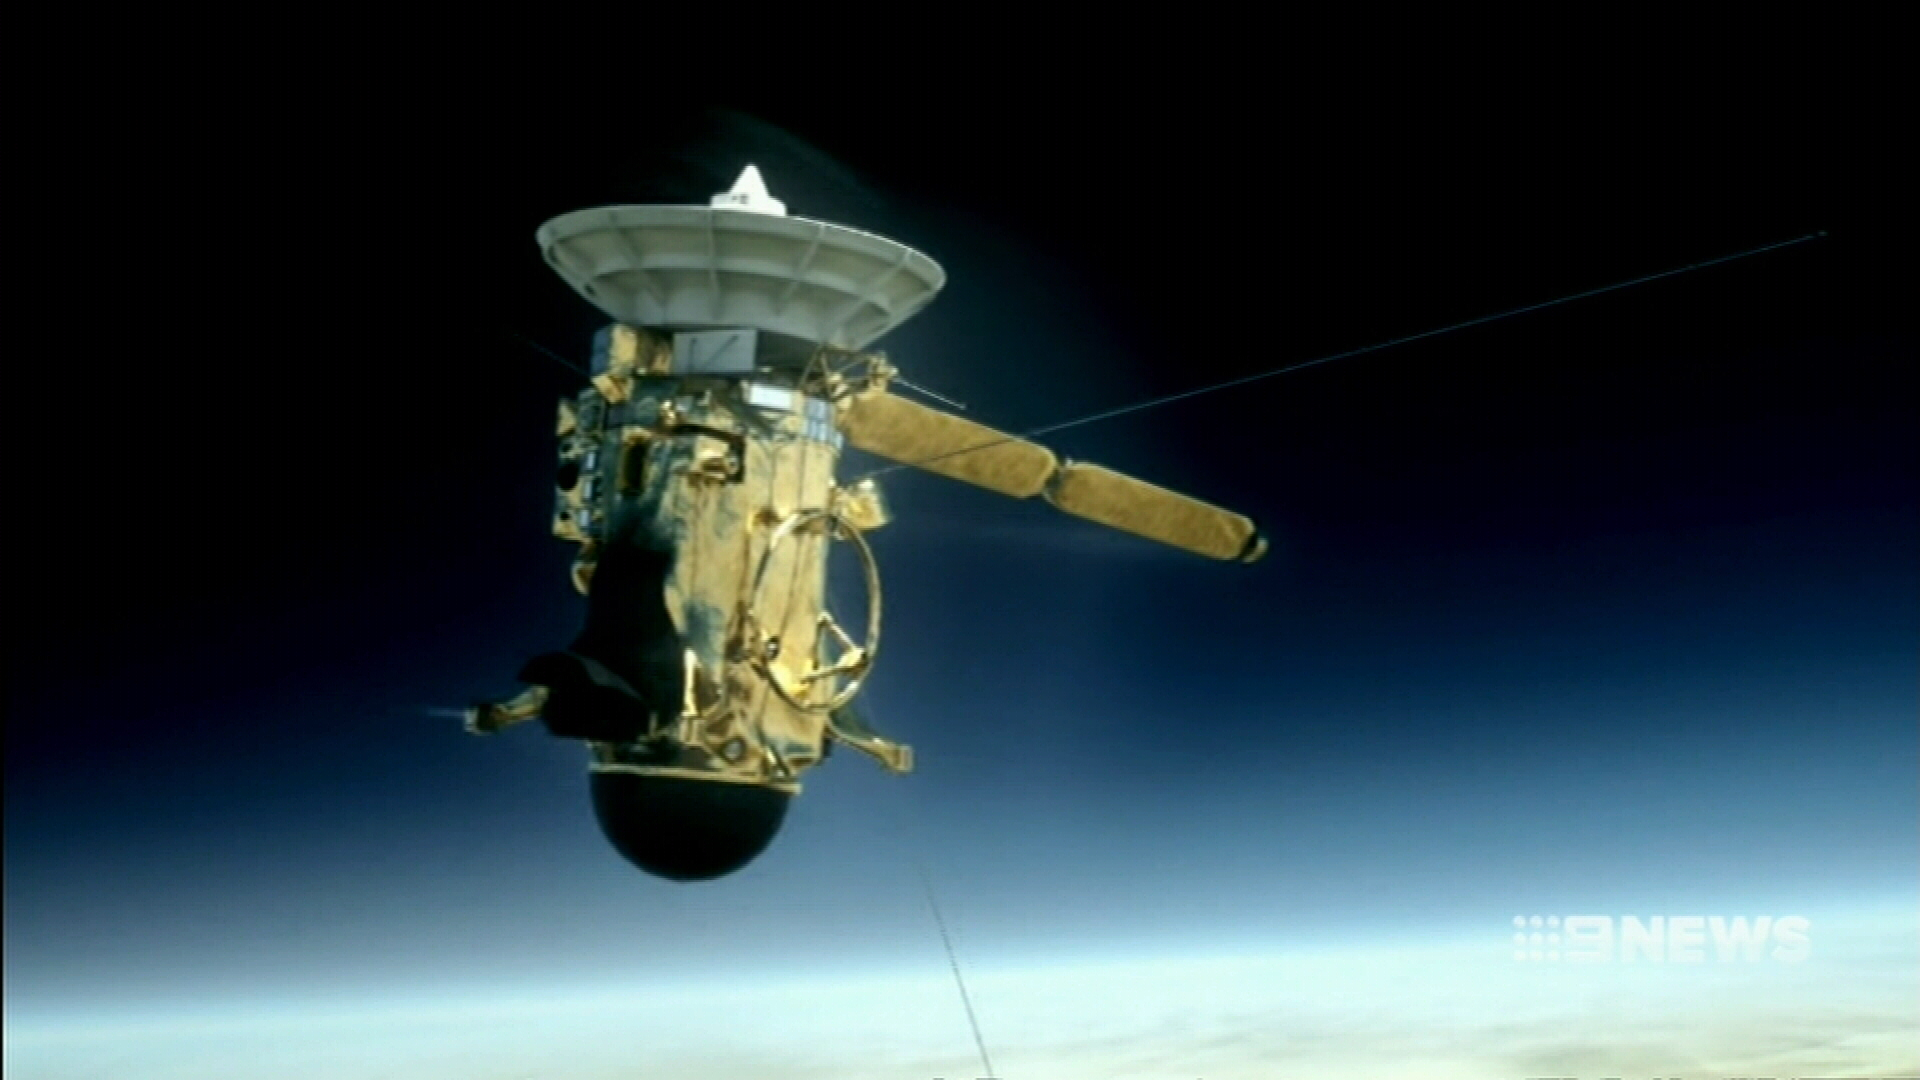 The Cassini spacecraft has one final, fiery mission. (9NEWS)